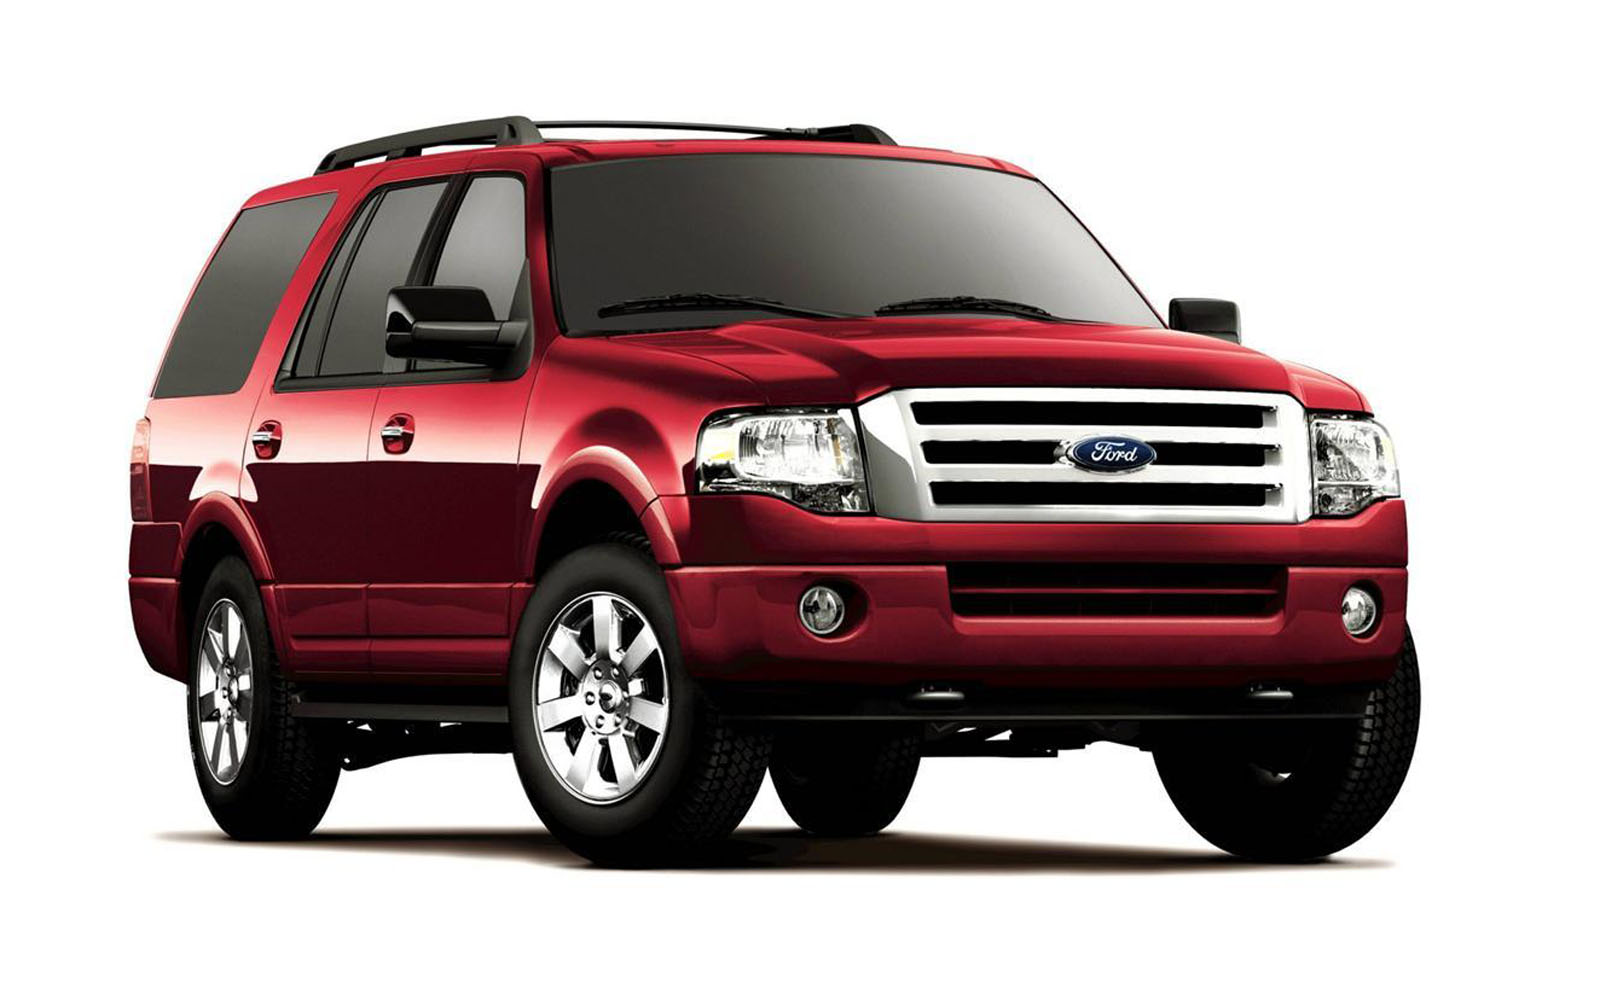 wallpapers ford expedition suv car wallpapers. Black Bedroom Furniture Sets. Home Design Ideas